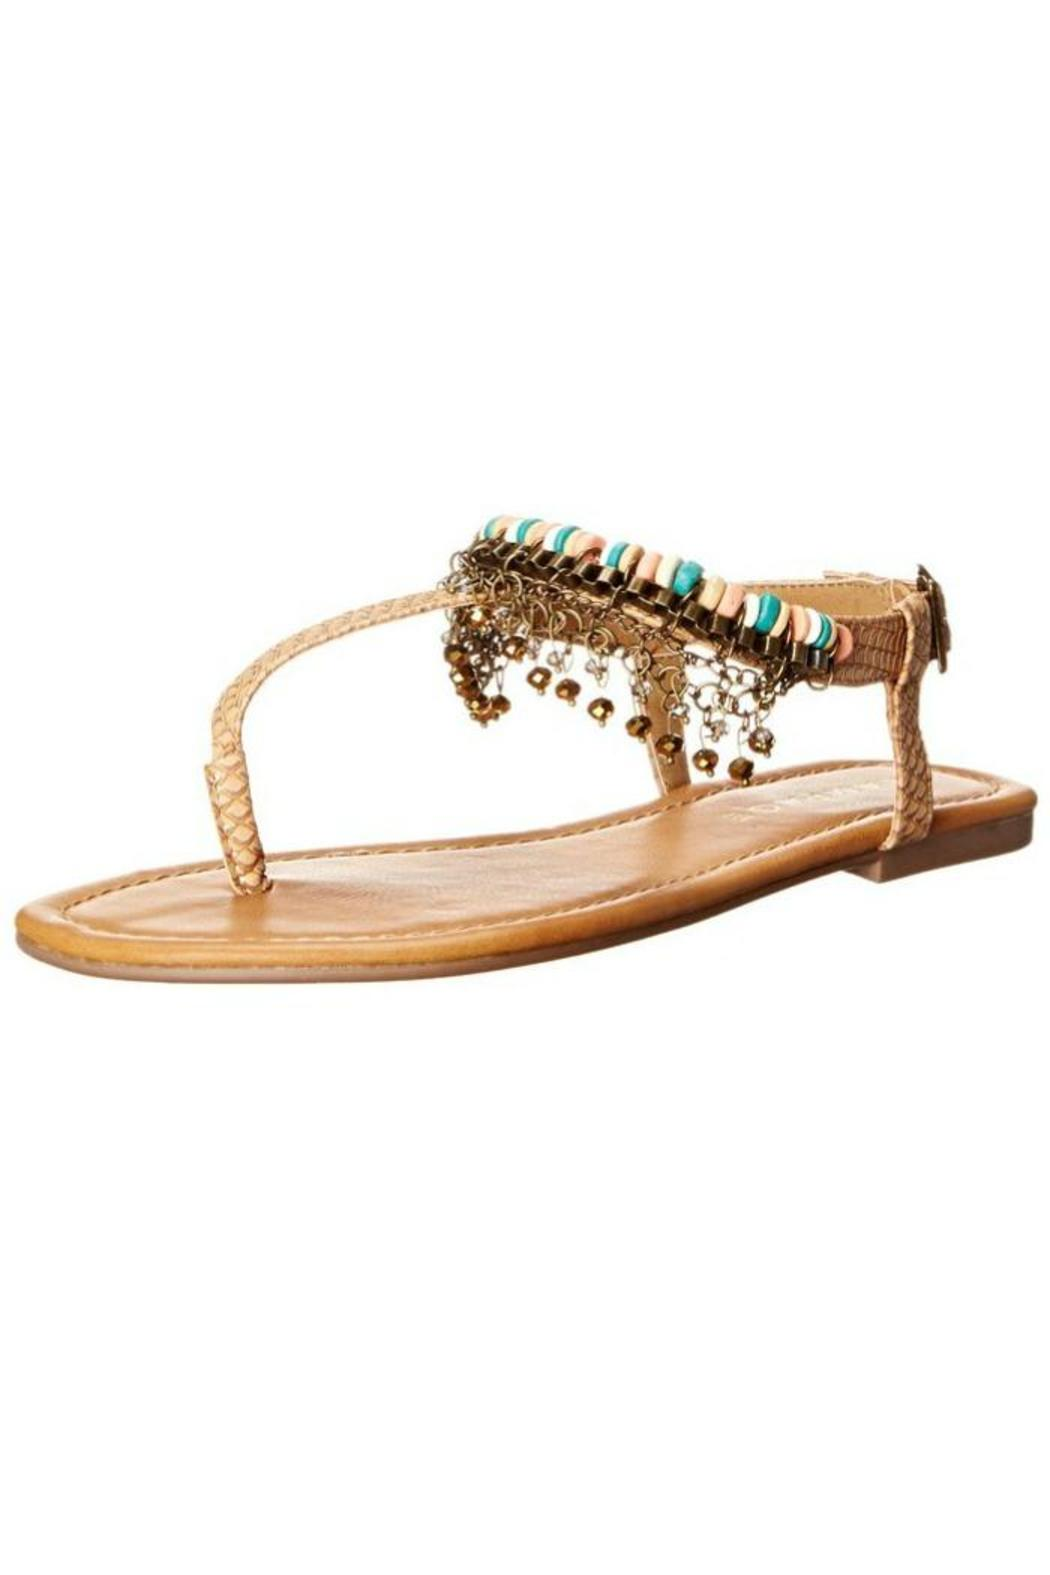 2f8cce03c61 Rampage Beaded Fringe Sandal from Atlanta by Sassy Prints — Shoptiques